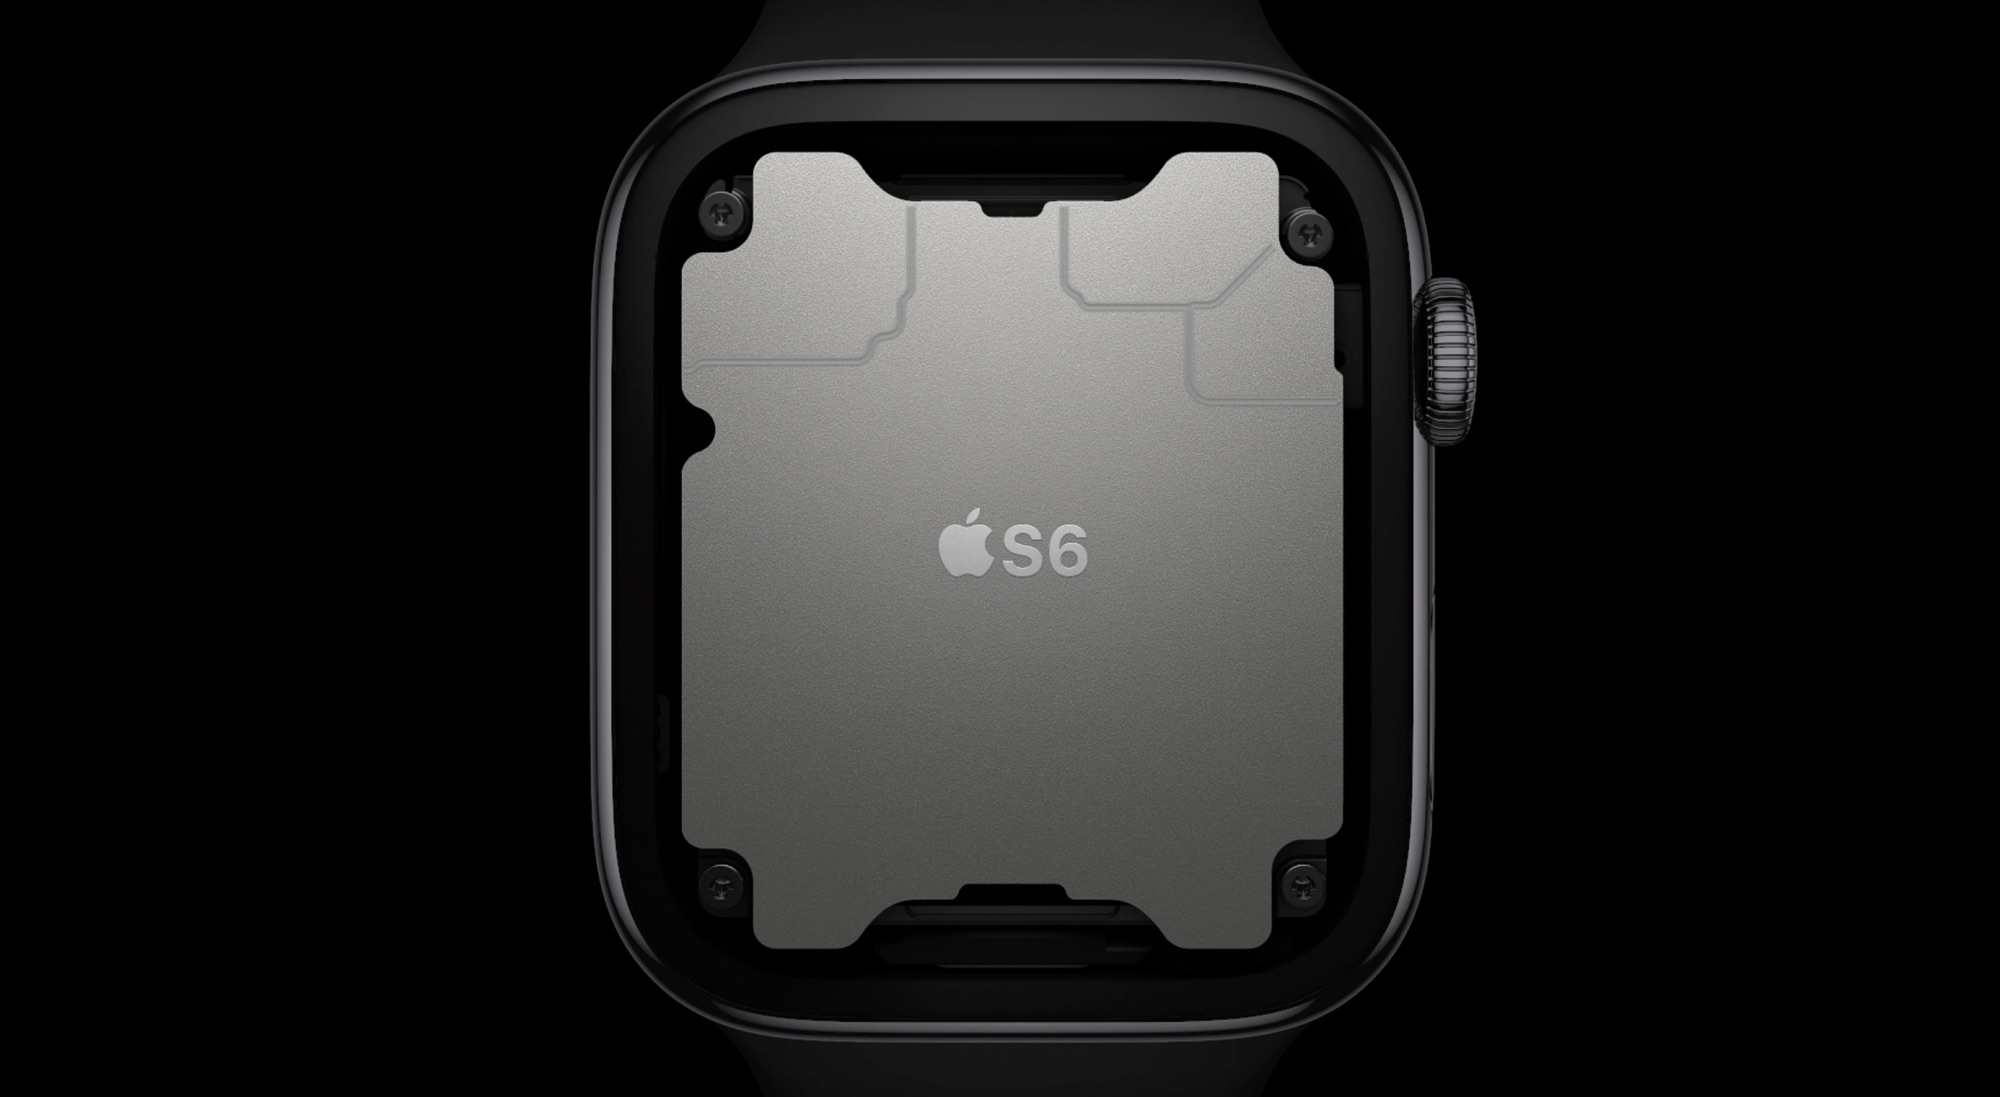 Apple Watch S6 chip